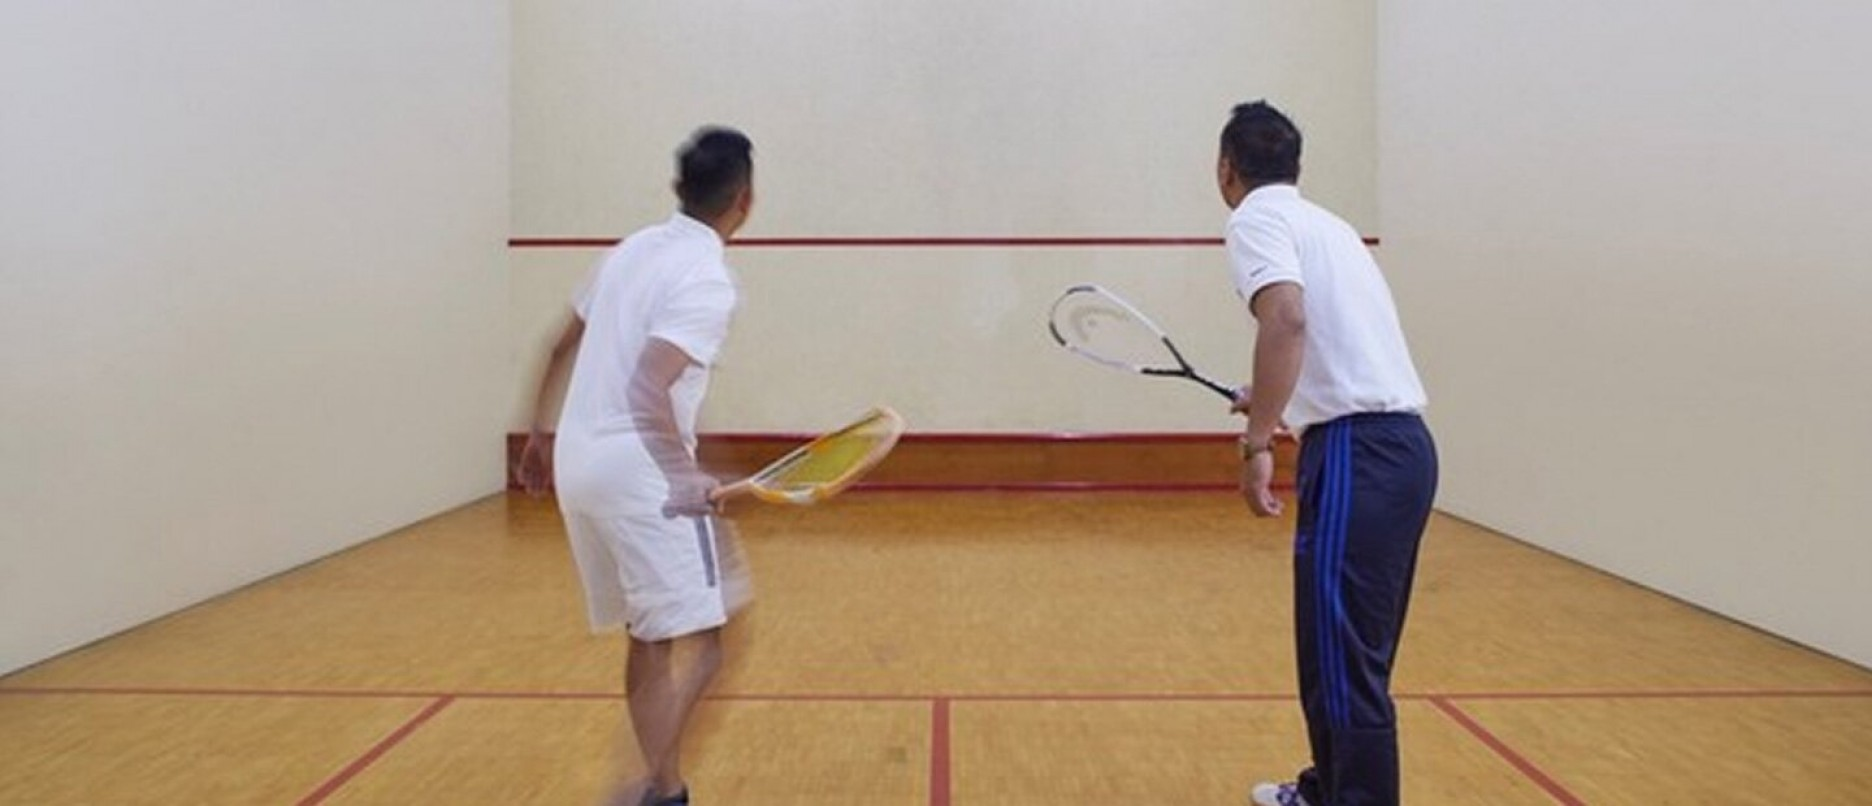 Indoor squash court